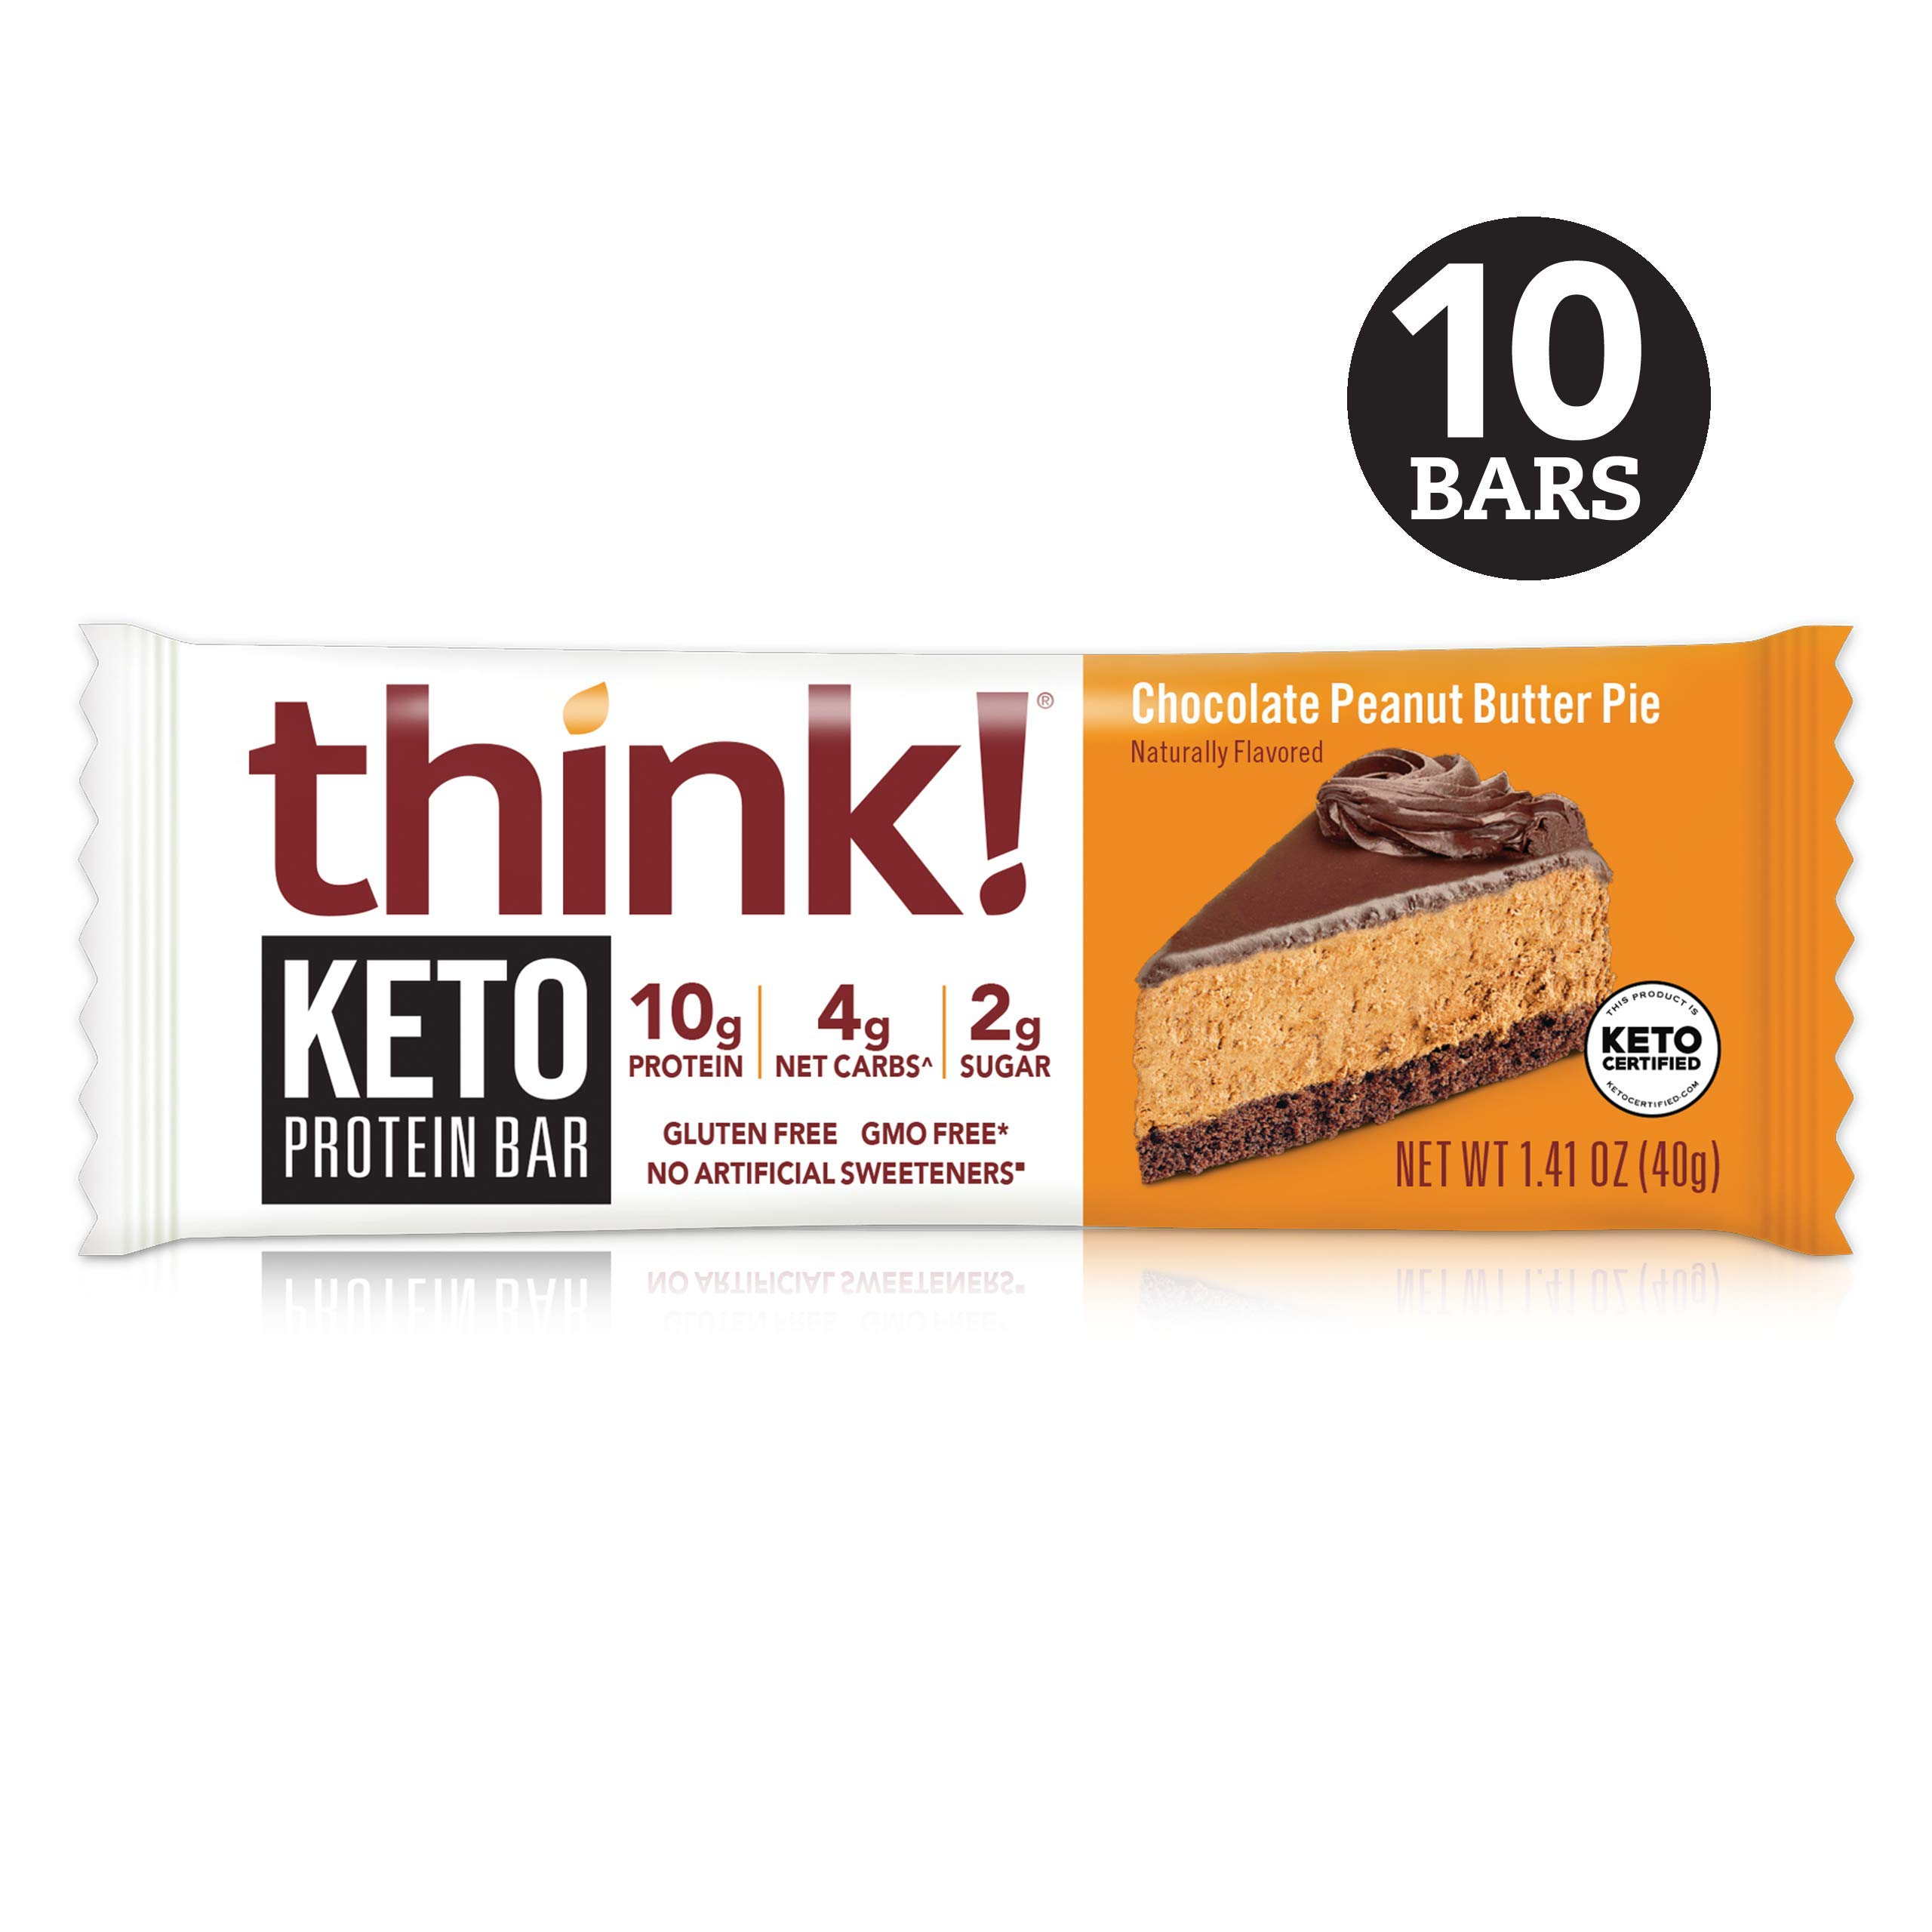 think! Keto Protein Bars - Chocolate Peanut Butter Pie, 10g Protein, 4g Net Carbs, 2g Sugar, No Artificial Sweeteners, Gluten Free, GMO Free, Keto Certified, 1.4 oz bar (10 Count) by think!